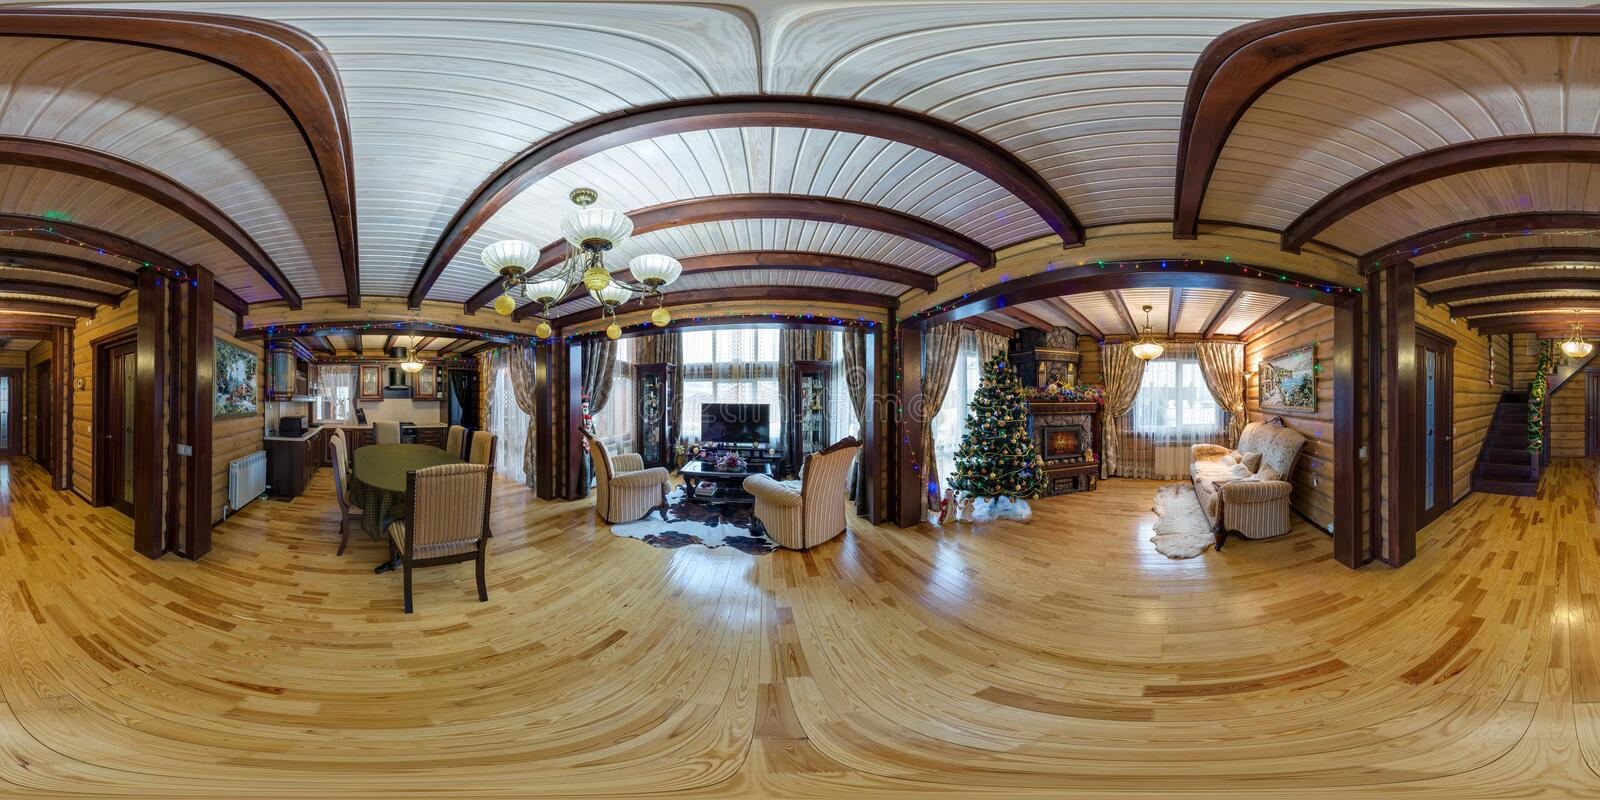 MOGILEV, BELARUS - DECEMBER, 2017: Full spherical seamless panorama 360 degrees angle view in interior of wooden rustic hall in. Vacation house equirectangular stock photography